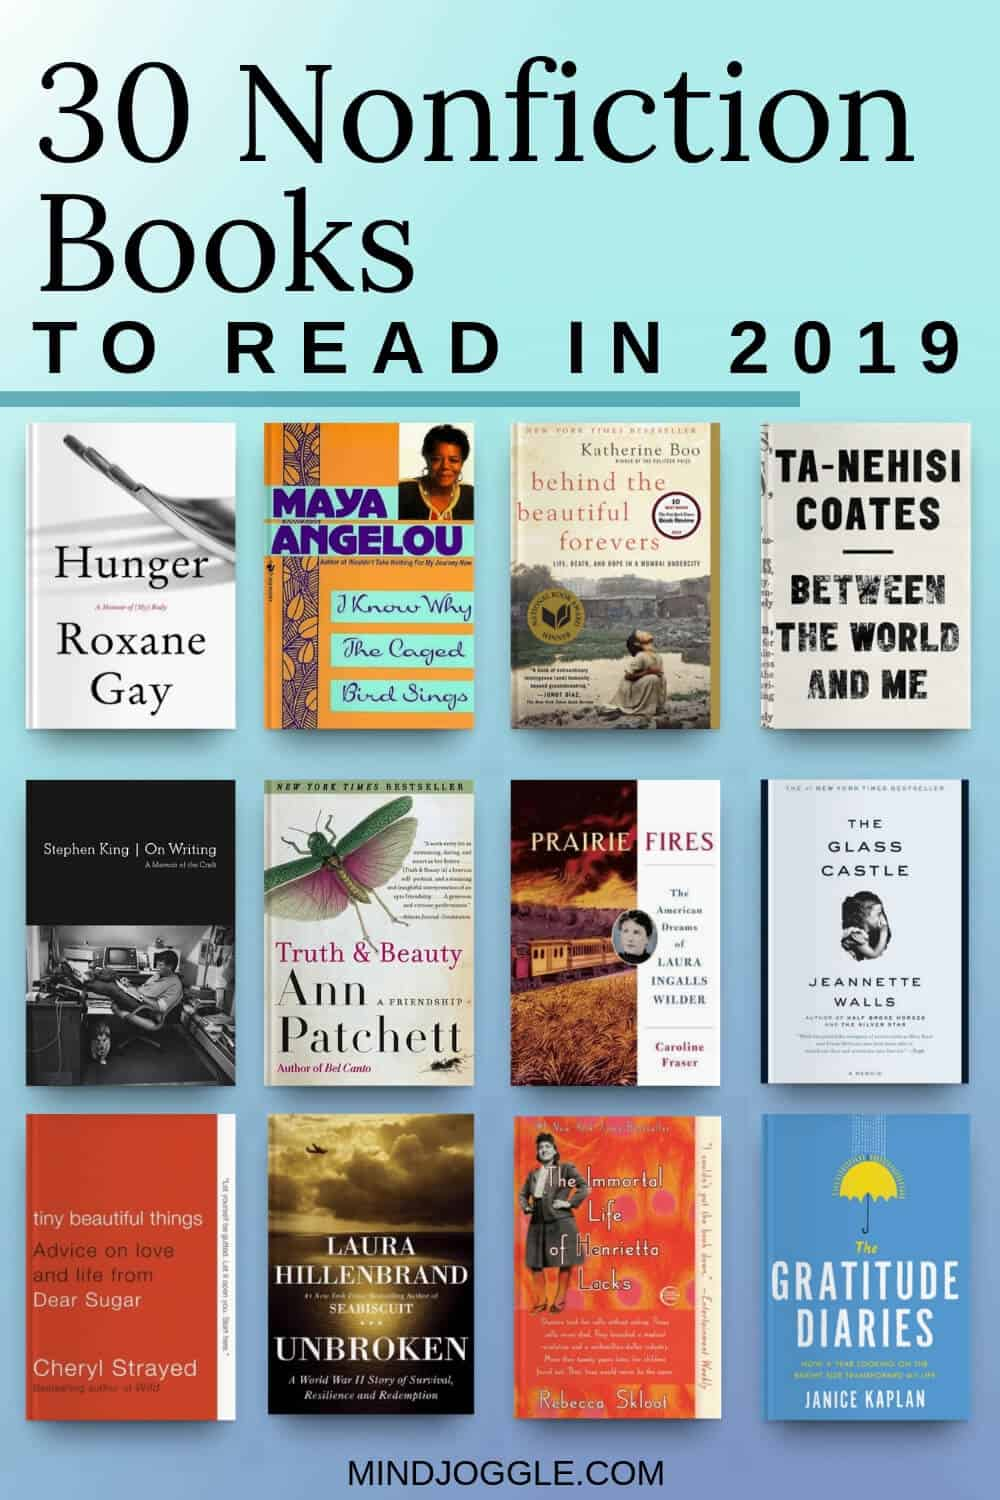 30 Memoirs and Nonfiction Books to Read in 2019. Add these nonfiction books to your reading list.